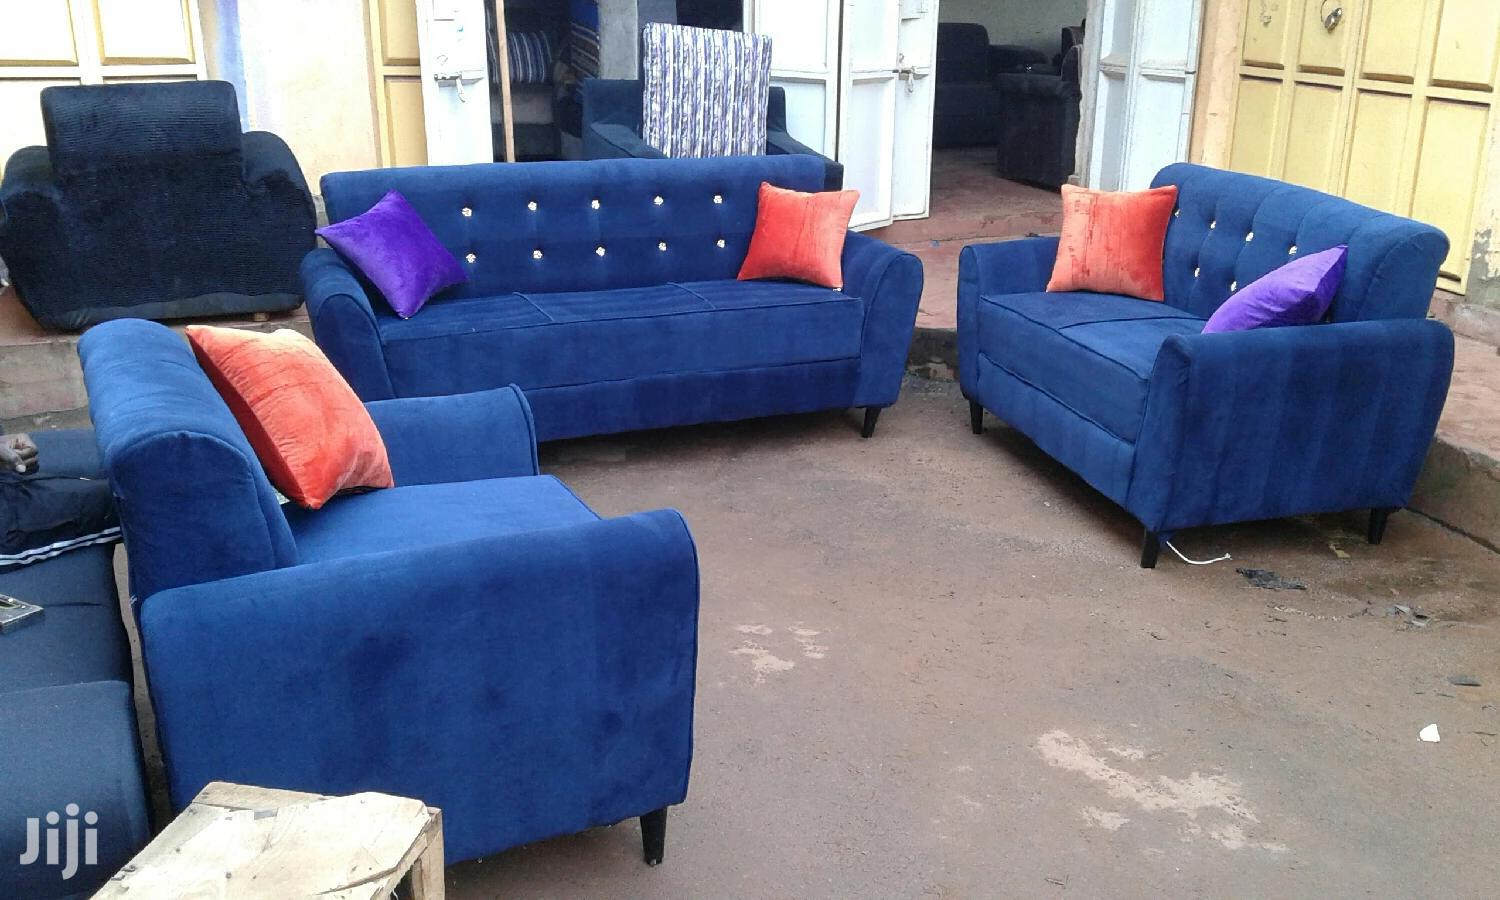 Archive: New Seven Seater Sofas Blue